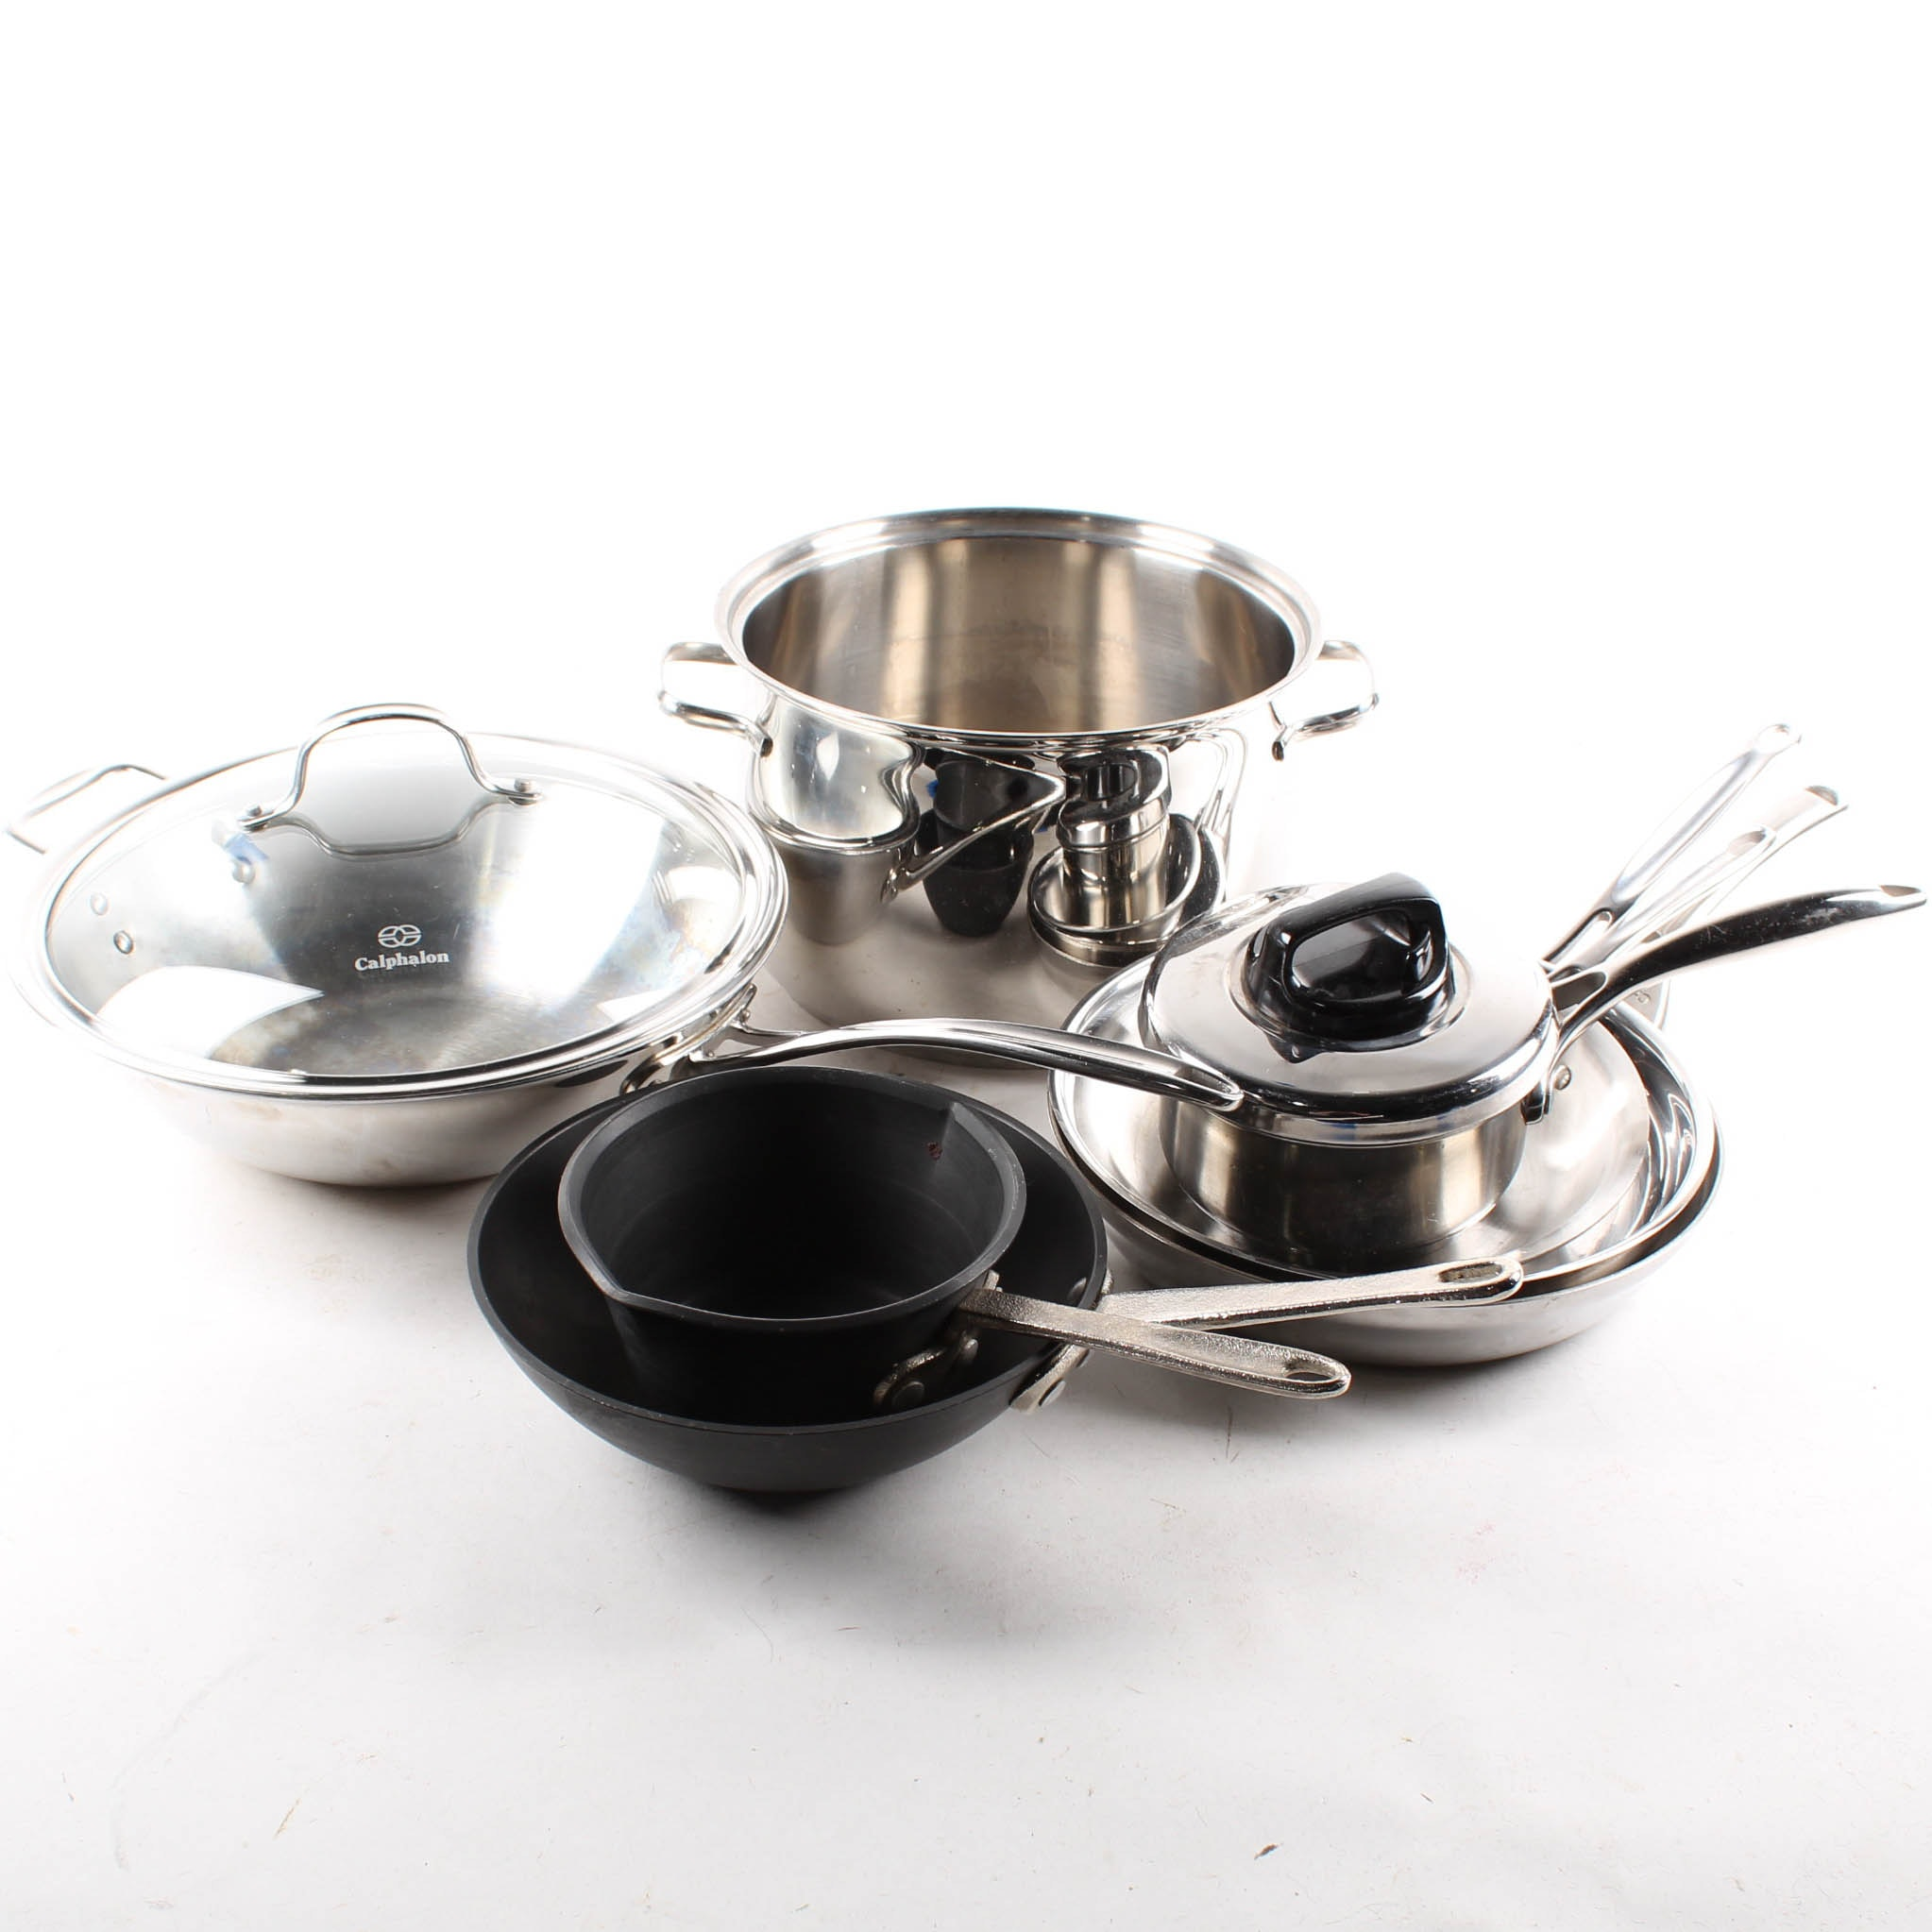 Stainless Steel Cookware with Calphalon